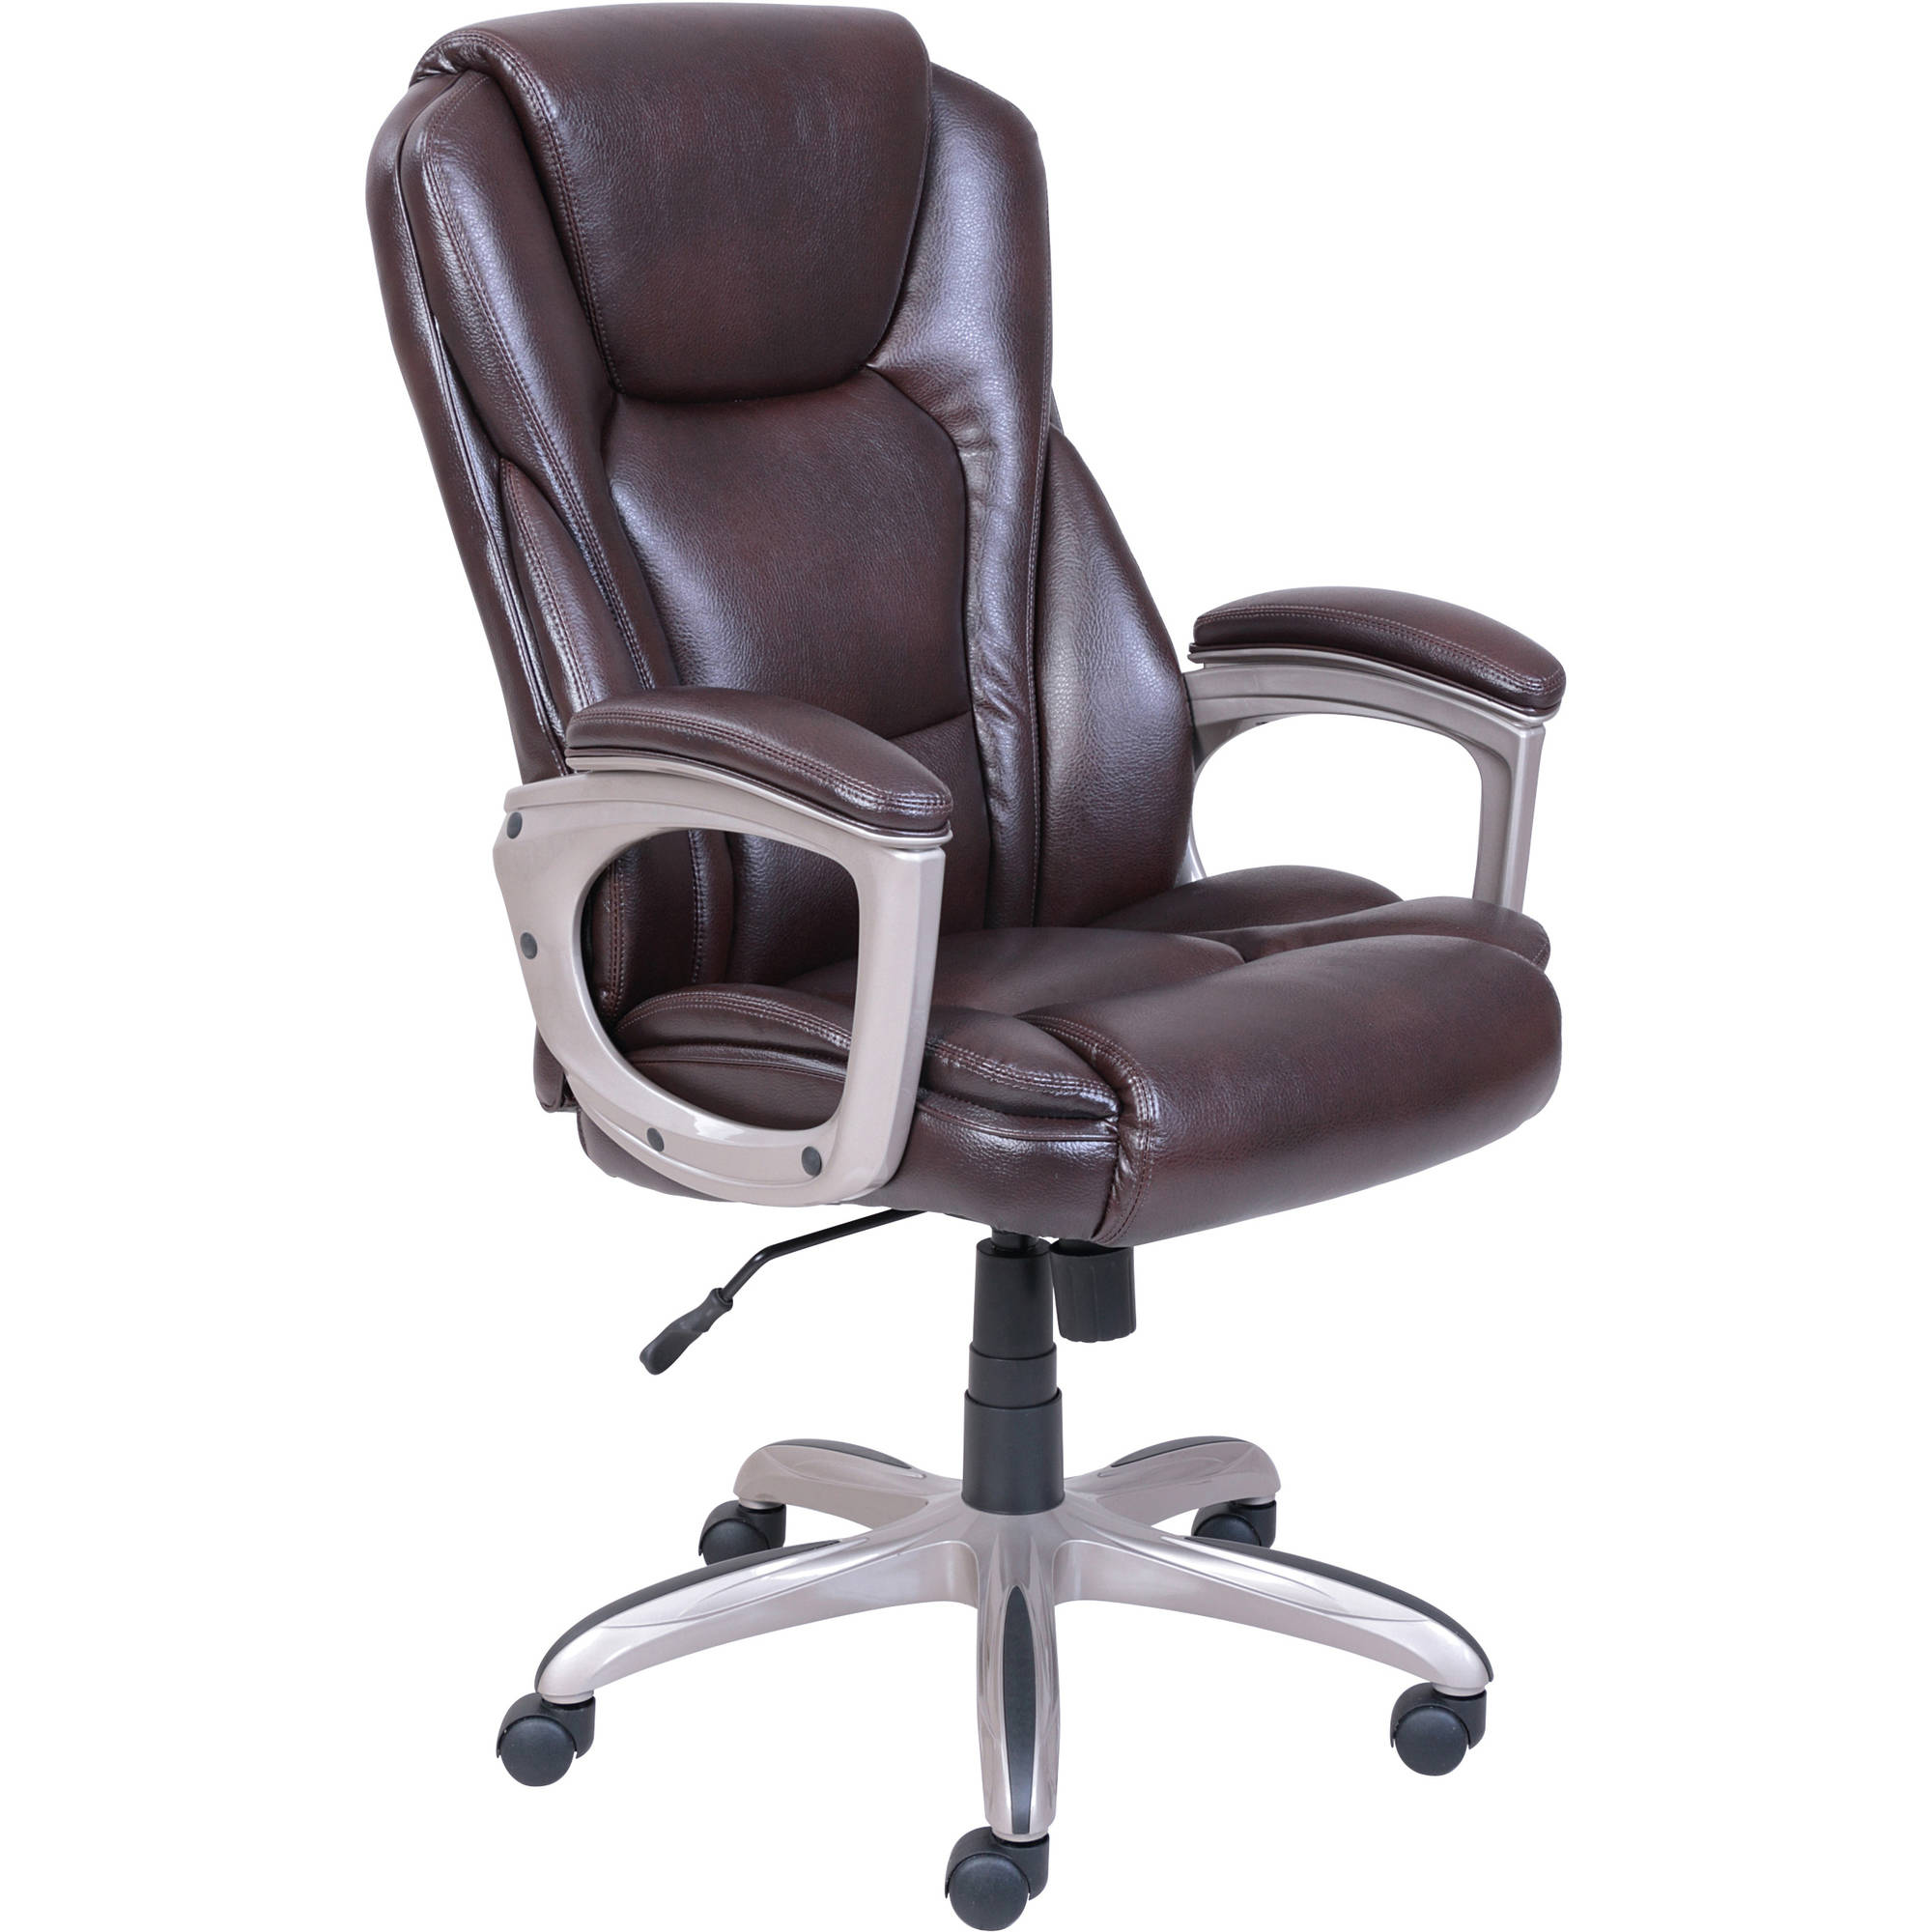 Serta Big & Tall Commercial Office Chair with Memory Foam - Walmart.com